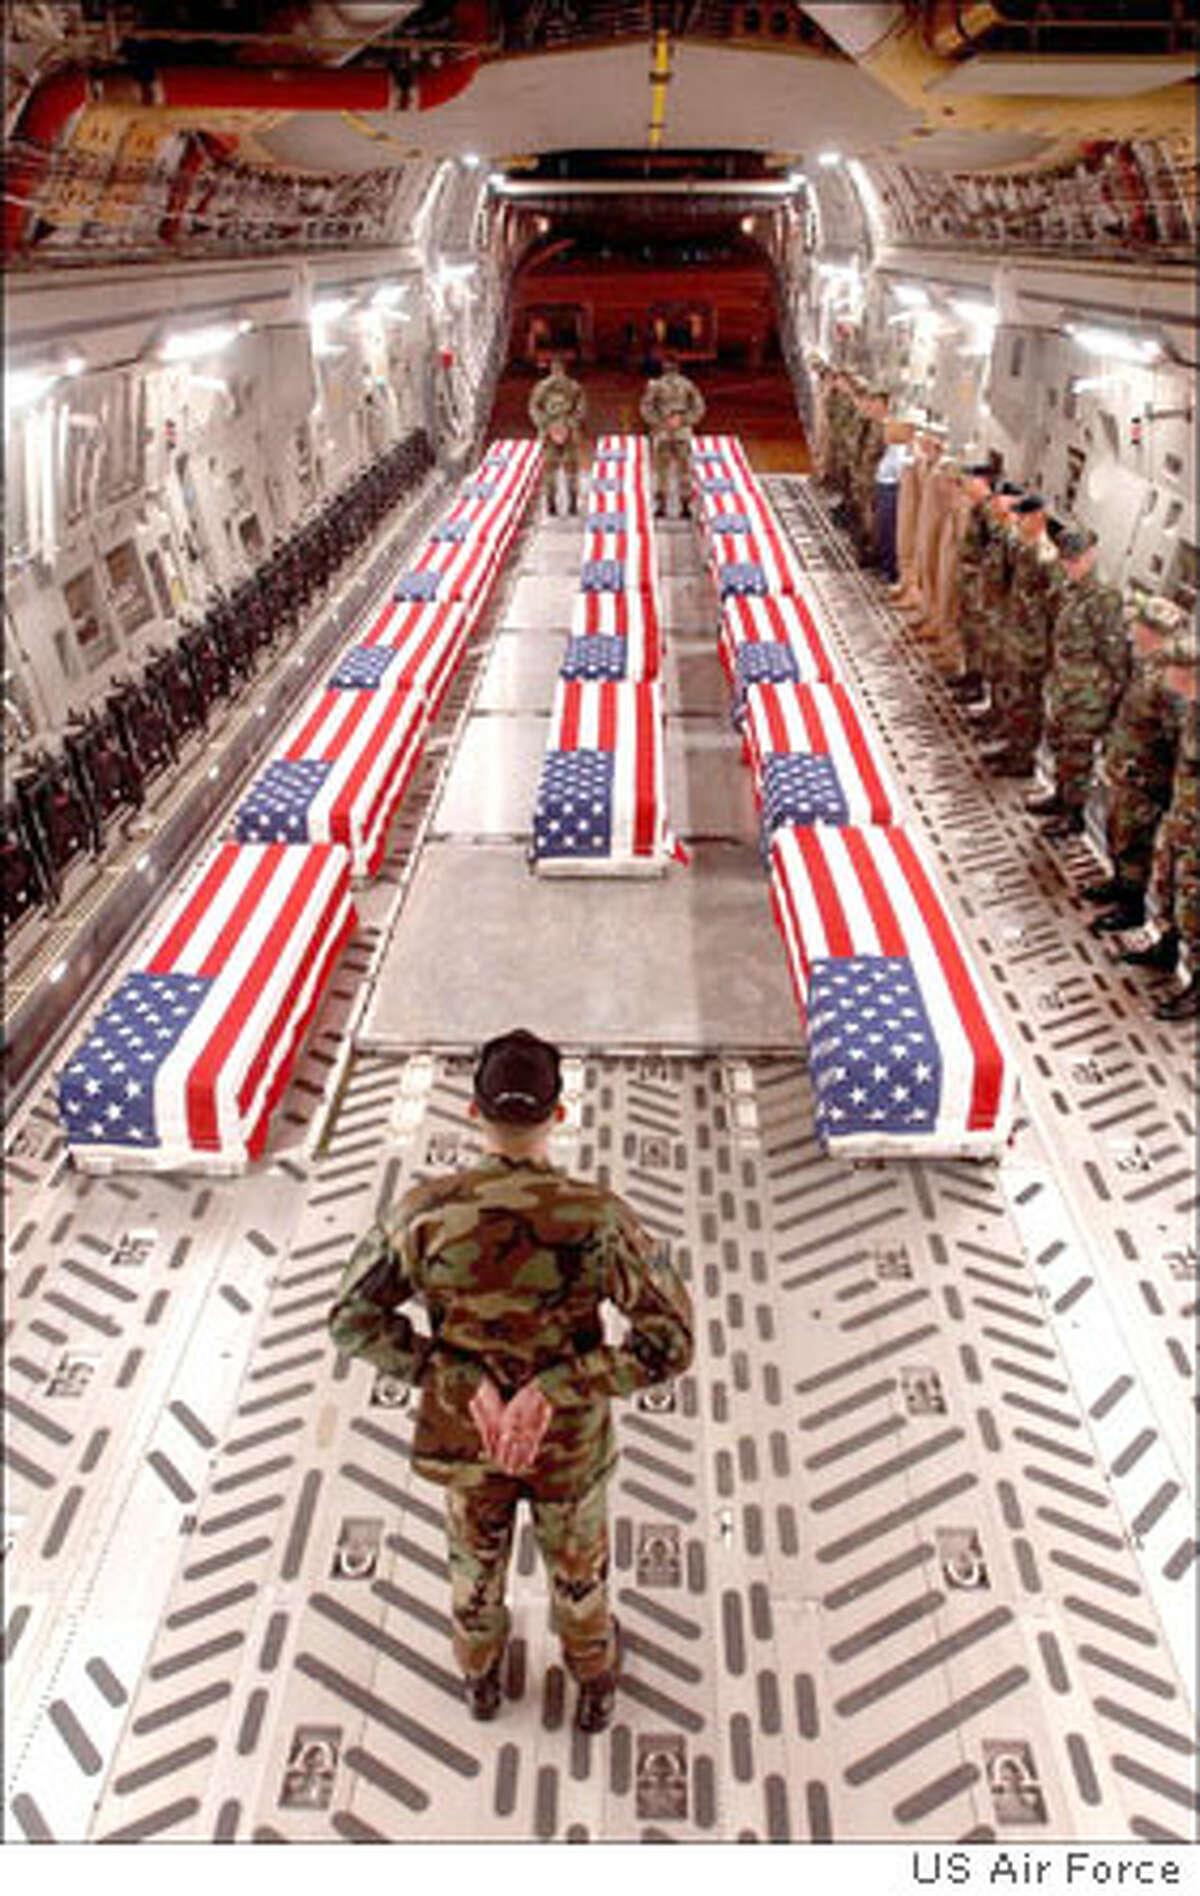 Military coffins with casualties from Iraq arrive at Dover (Del.) Air Force Base. Photo courtesy of U.S. Air Force